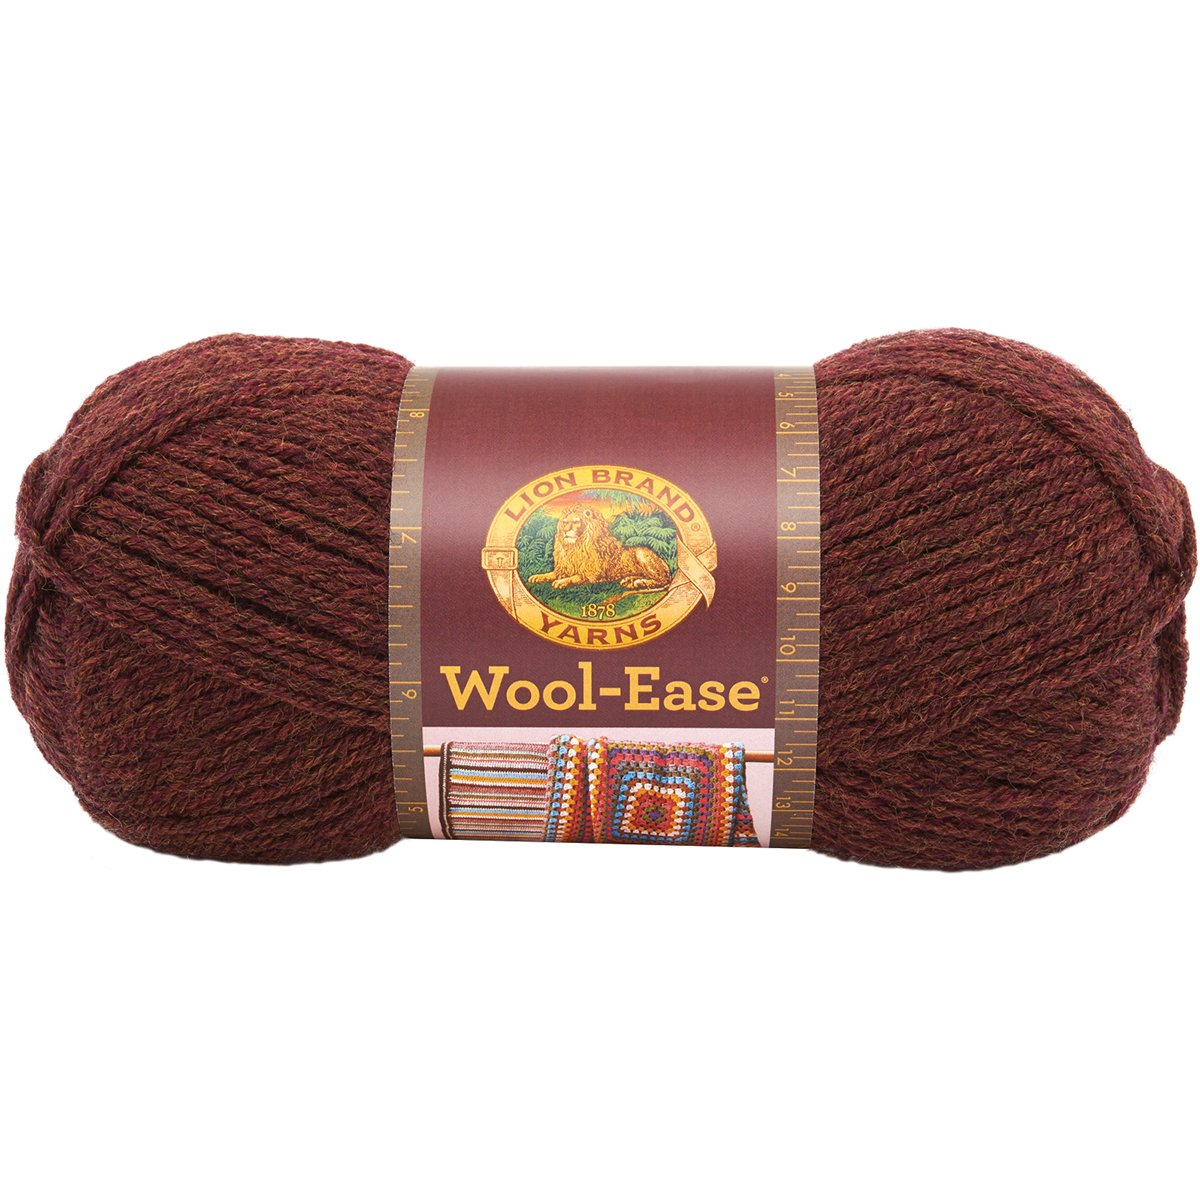 Lion Brand Yarn 620-114B Wool-Ease Yarn, Denim